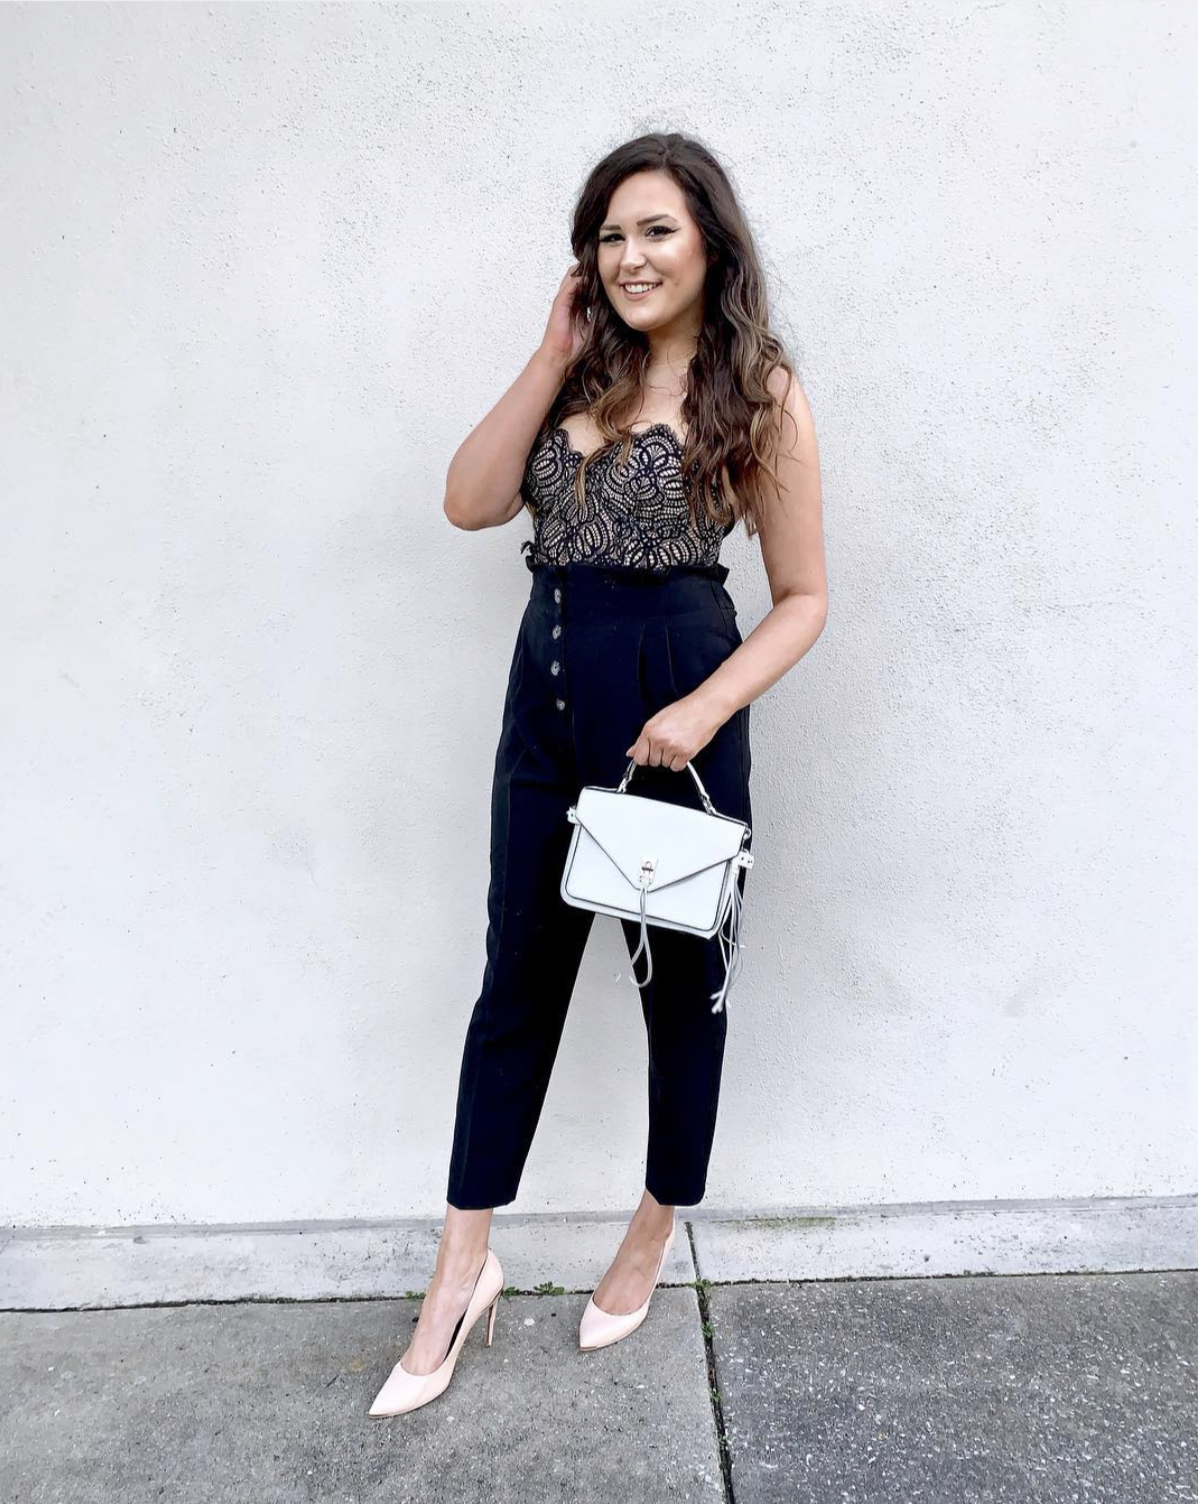 Mash Elle beauty blogger | winter to spring outfit | winter fashion | spring fashion | pumps | high heels | corset